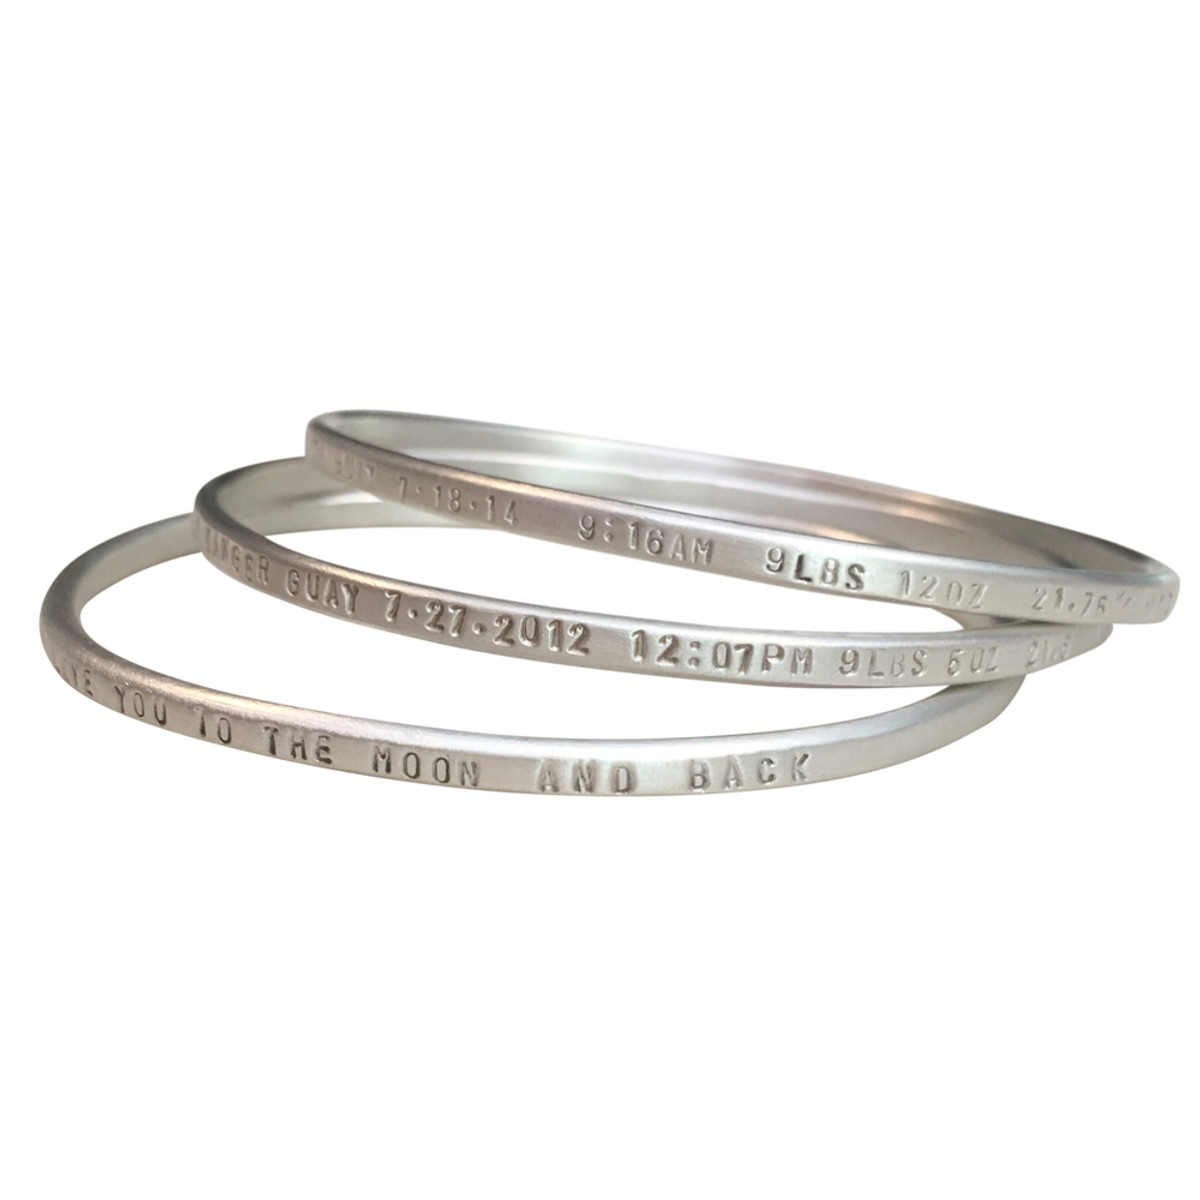 happiness bracelet boutique bracelets bangle in time en silver rose gold thin cuff bangles